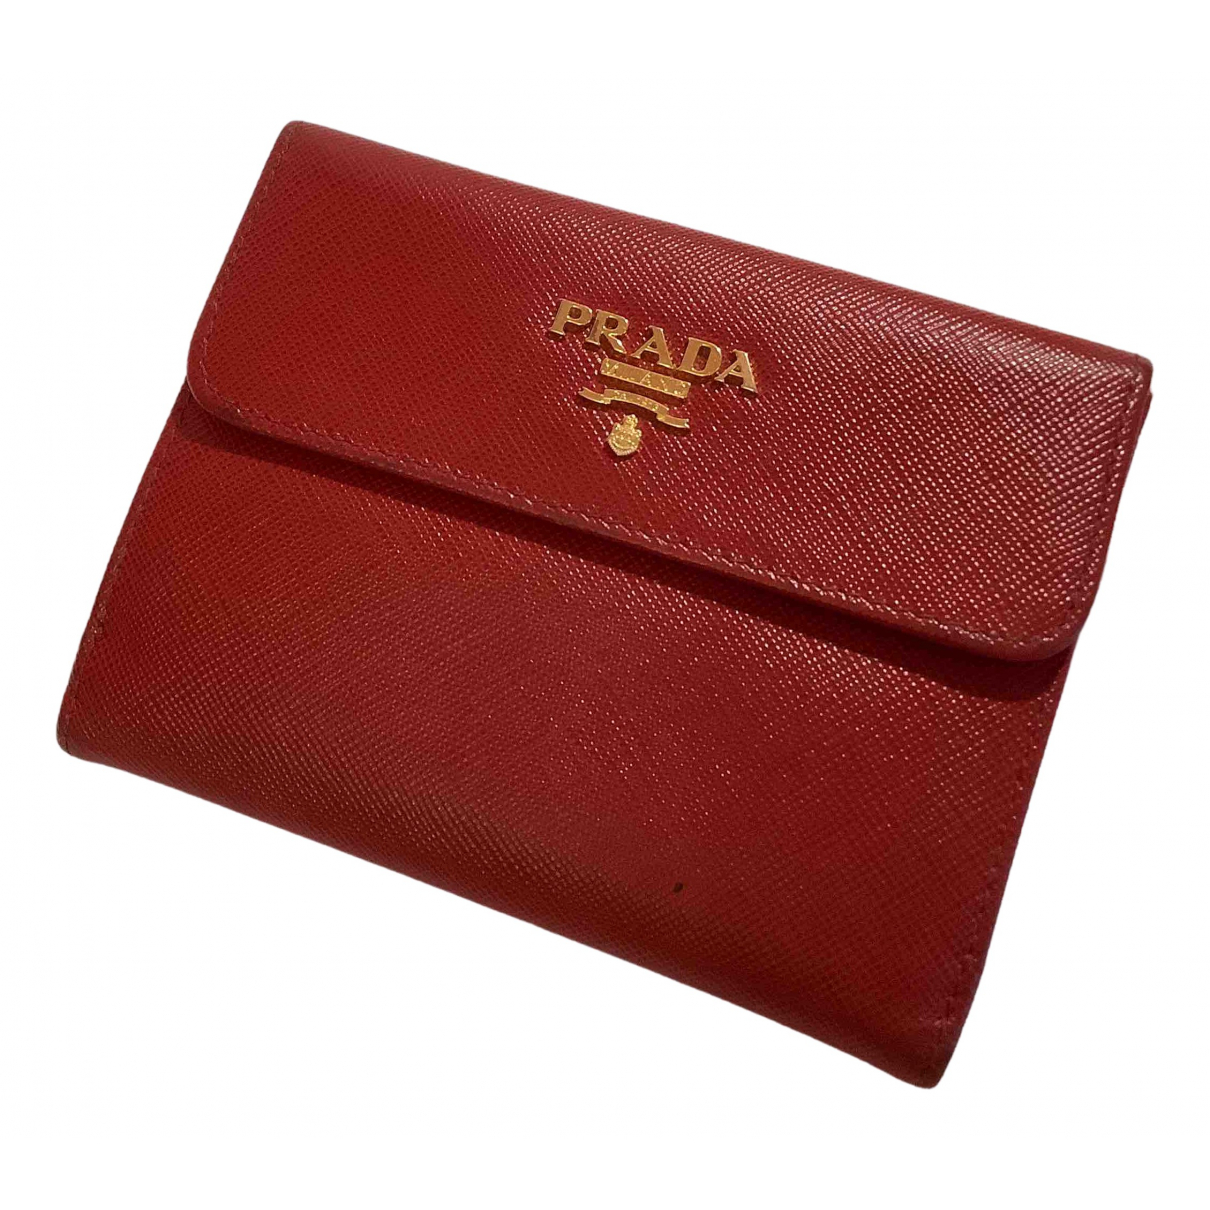 Prada \N Red Leather wallet for Women \N